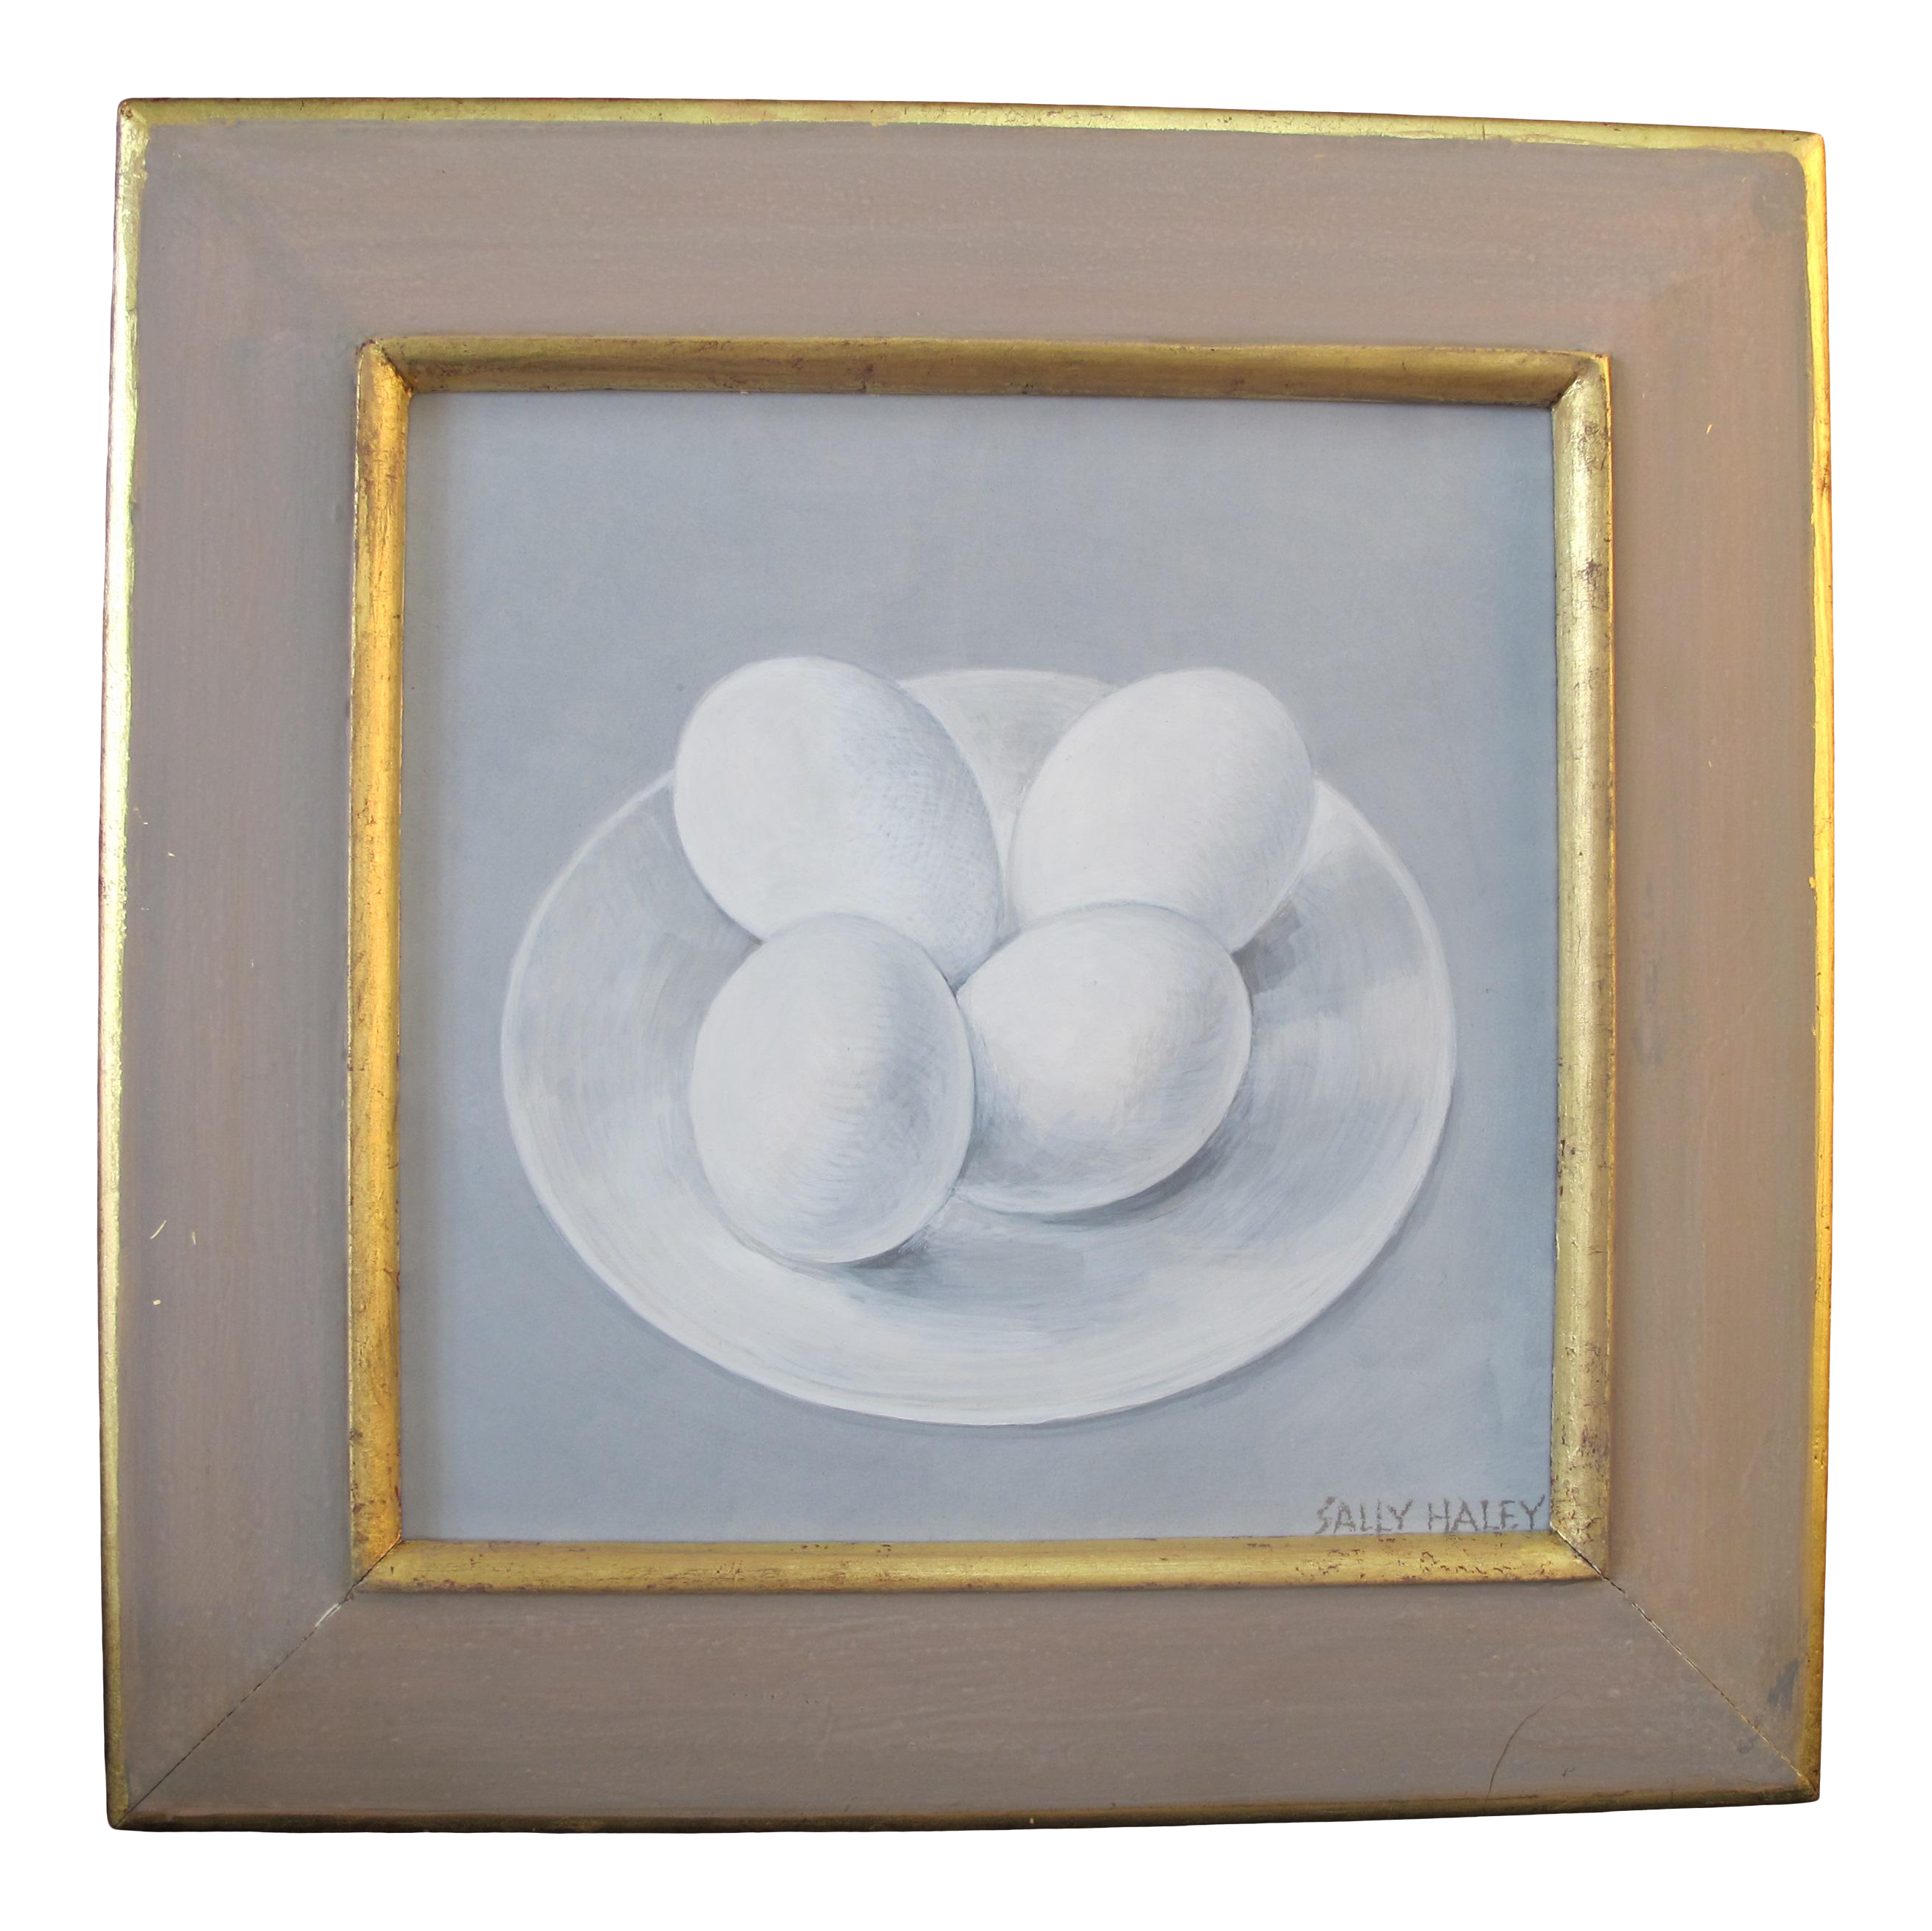 Sally Haley Pacific Nw Art Tempera Still Life Painting Of 4 Eggs On Plate Chairish